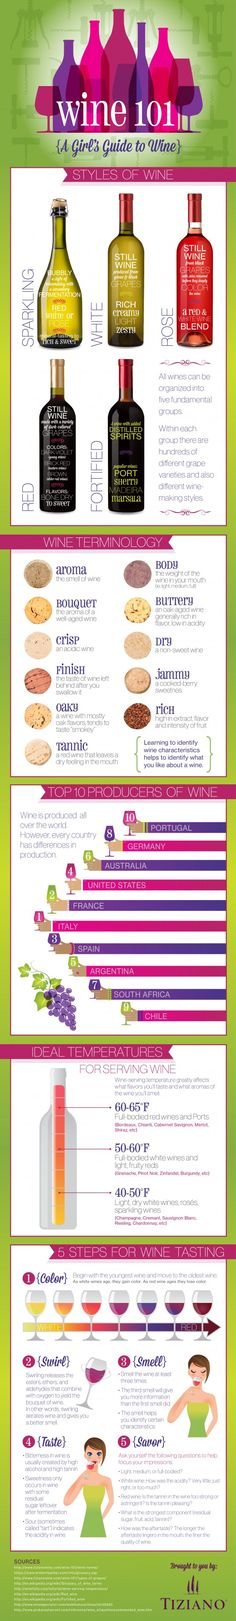 Wine 101 A Girl's Guide to Wine #Infographic #Wine #Girls